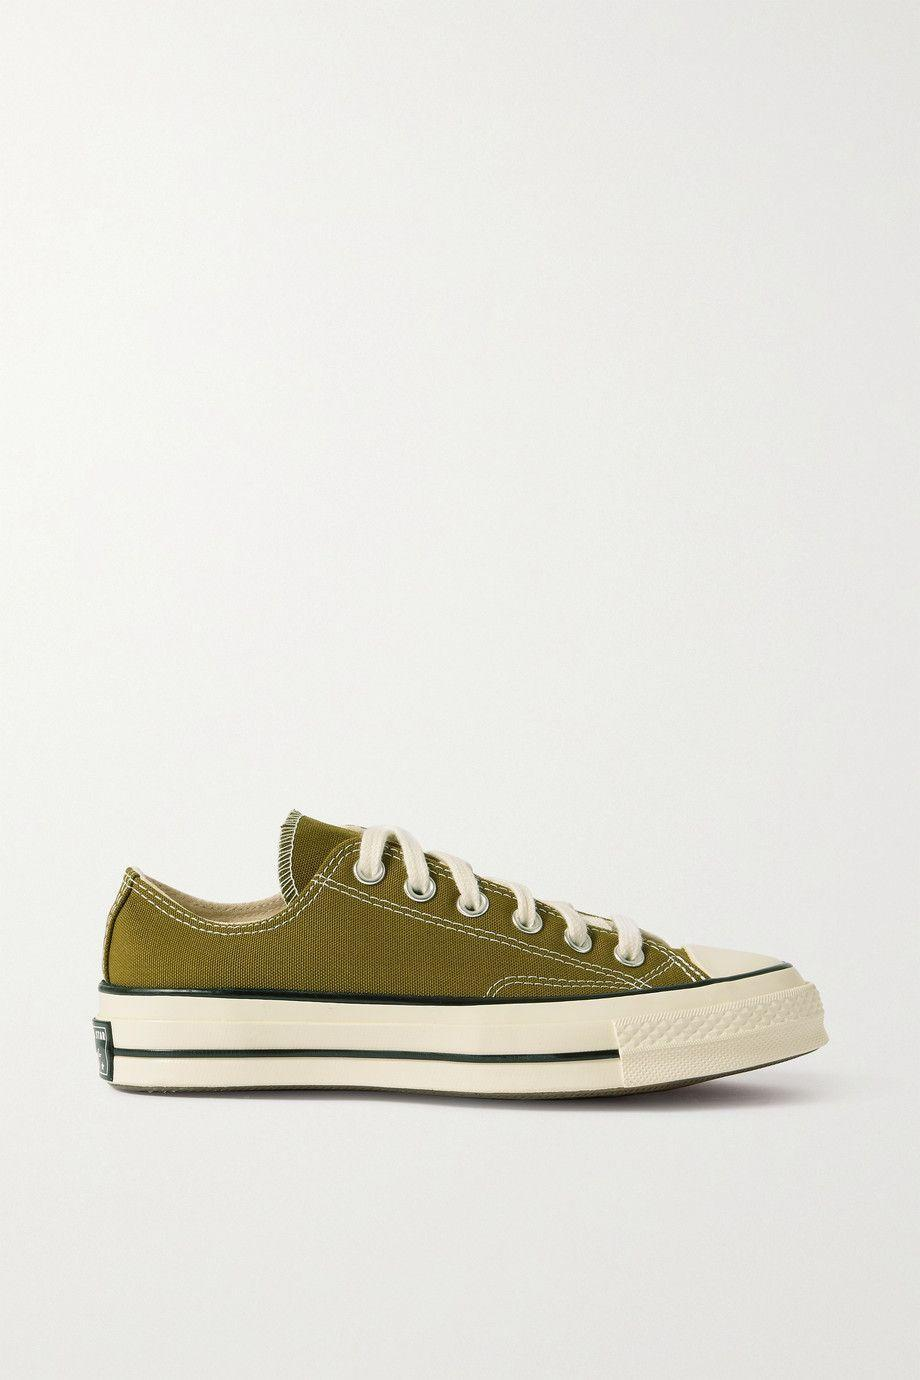 """<p>In versione verde oliva, l'iconica <strong>Chuck Taylor All Star 70 </strong>in canvas.</p><p><a class=""""link rapid-noclick-resp"""" href=""""https://www.net-a-porter.com/en-it/shop/product/converse/shoes/low-top/chuck-taylor-all-star-70-canvas-sneakers/6630340698716519"""" rel=""""nofollow noopener"""" target=""""_blank"""" data-ylk=""""slk:85 euro su Net-a-porter.com"""">85 euro su Net-a-porter.com</a></p>"""